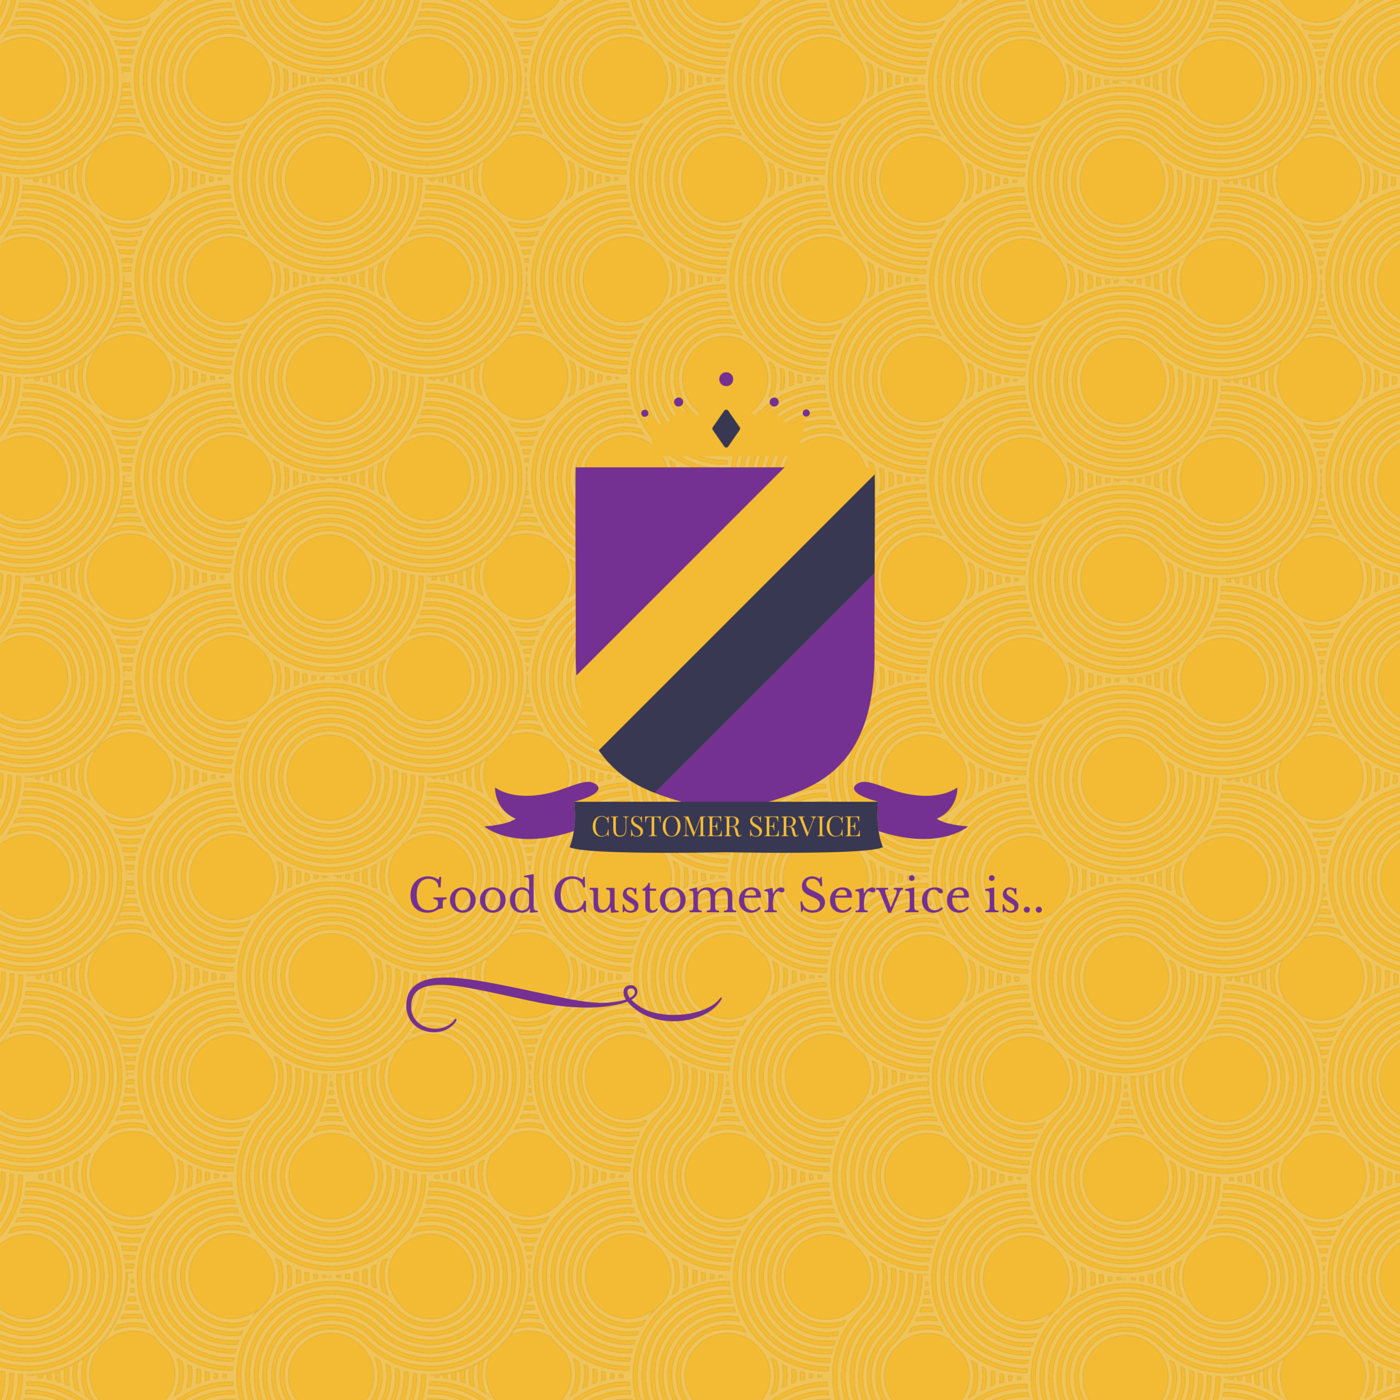 Good Customer Service is..